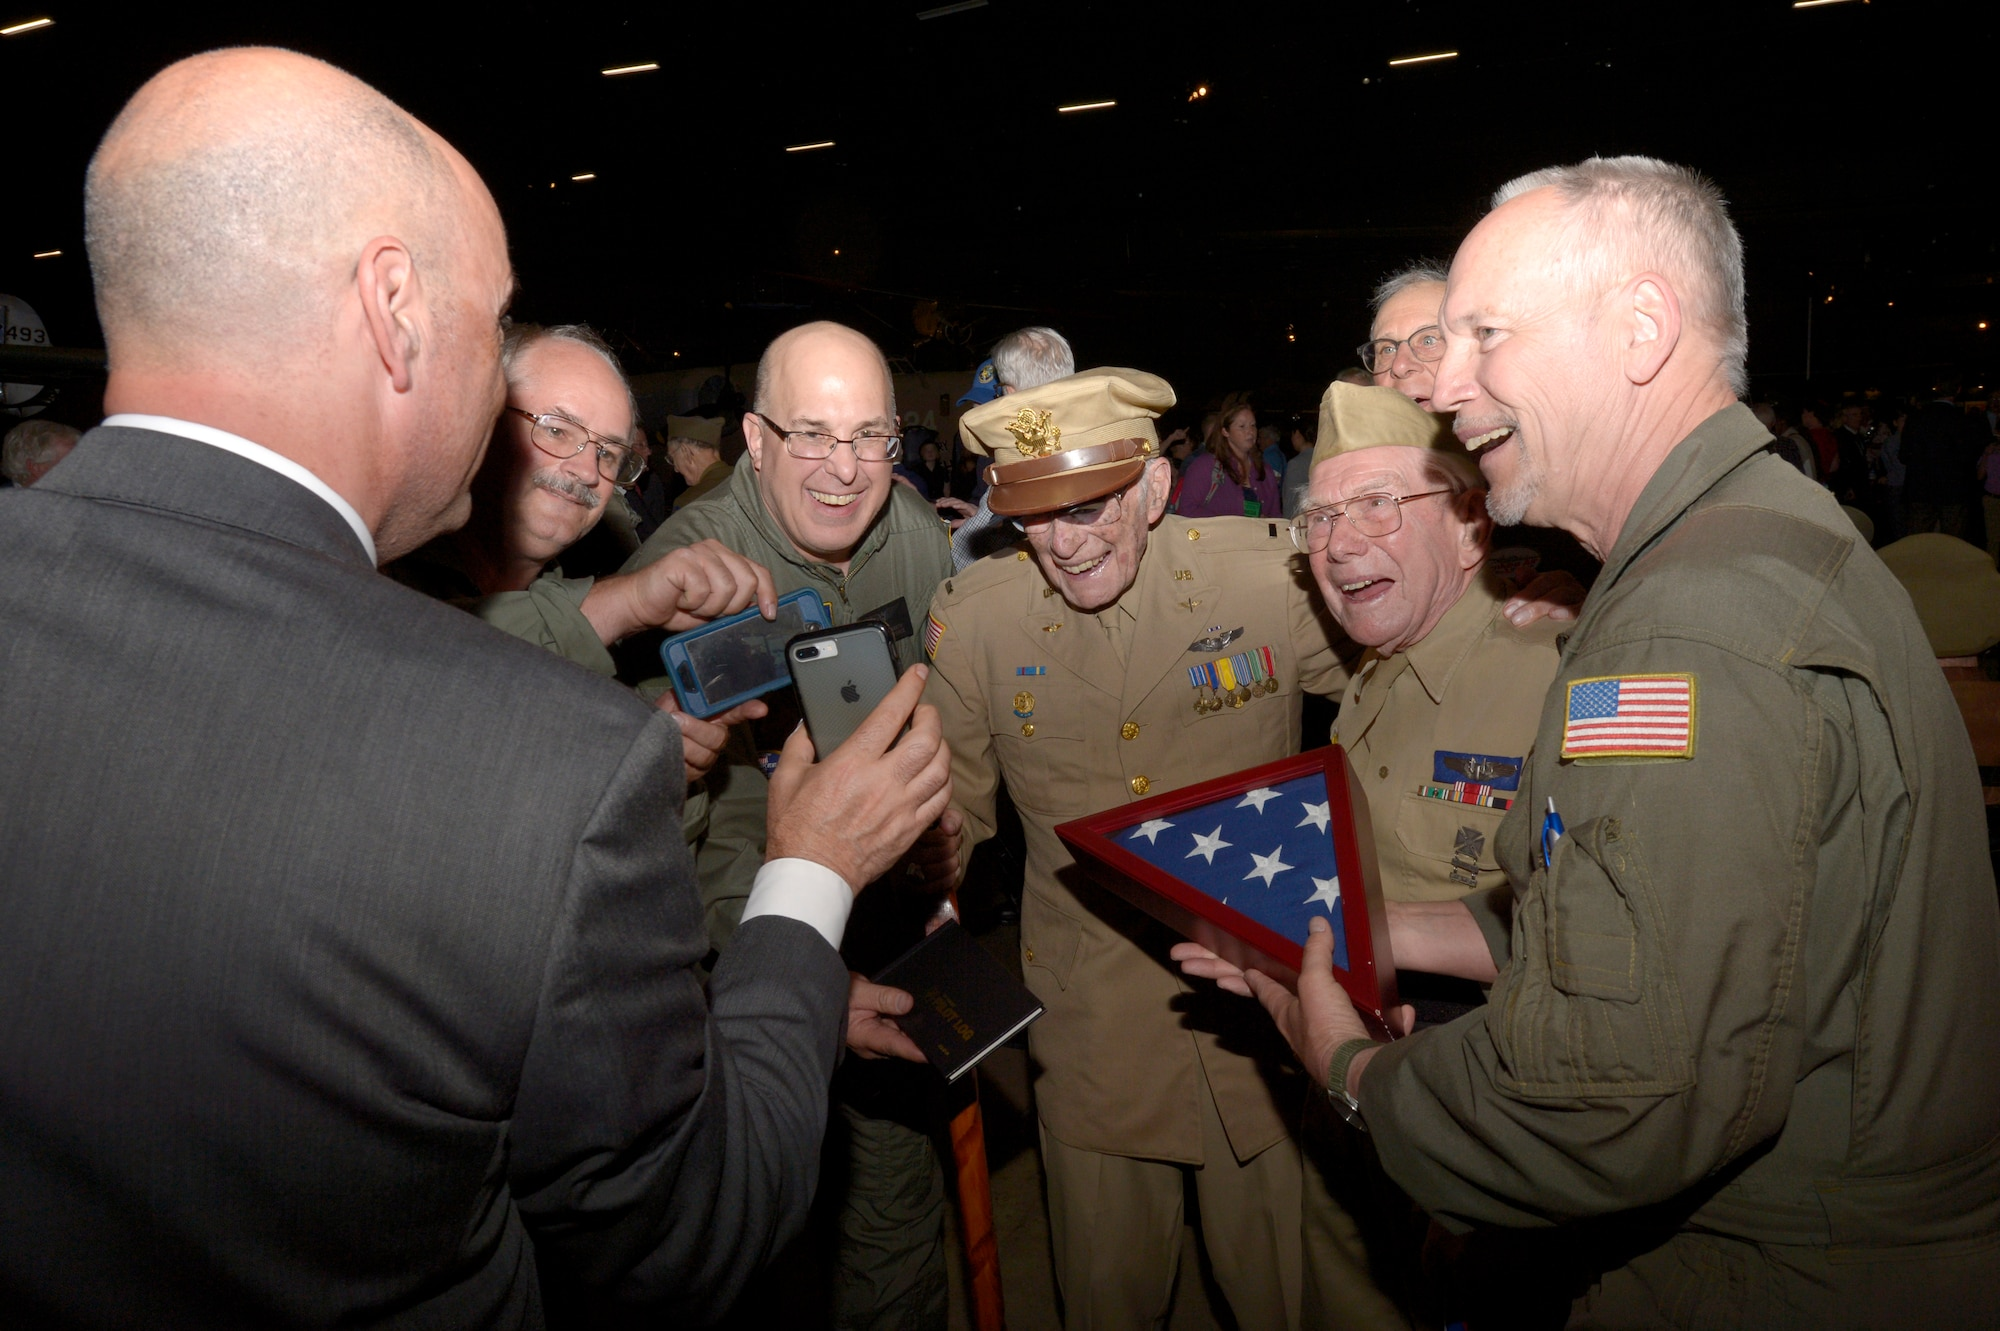 The Cincinnati Warbirds Experimental Aircraft Association Squadron 18 presented a U.S. flag to Herb Heilbrun, a 97-year-old B-17 pilot veteran. The flag was flown on the B-17 Yankee Lady during the formation flyover at the U.S. Air Force Museum, May 16, 2018. (U.S. Air Force photo by Staff Sgt. Megan Friedl)